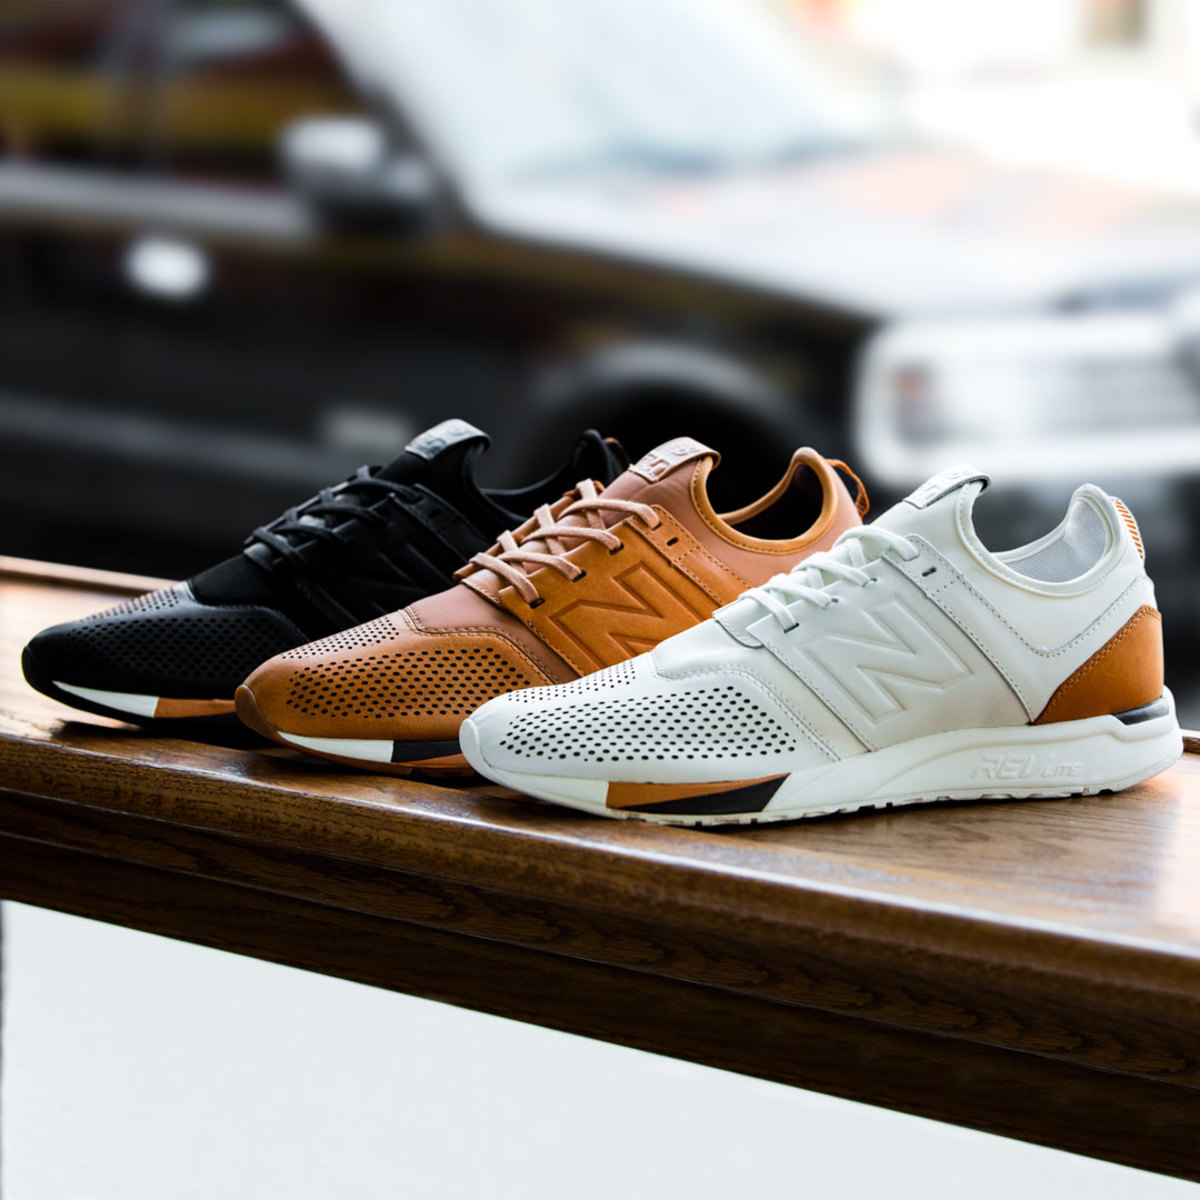 New Balance Luxury All Colors